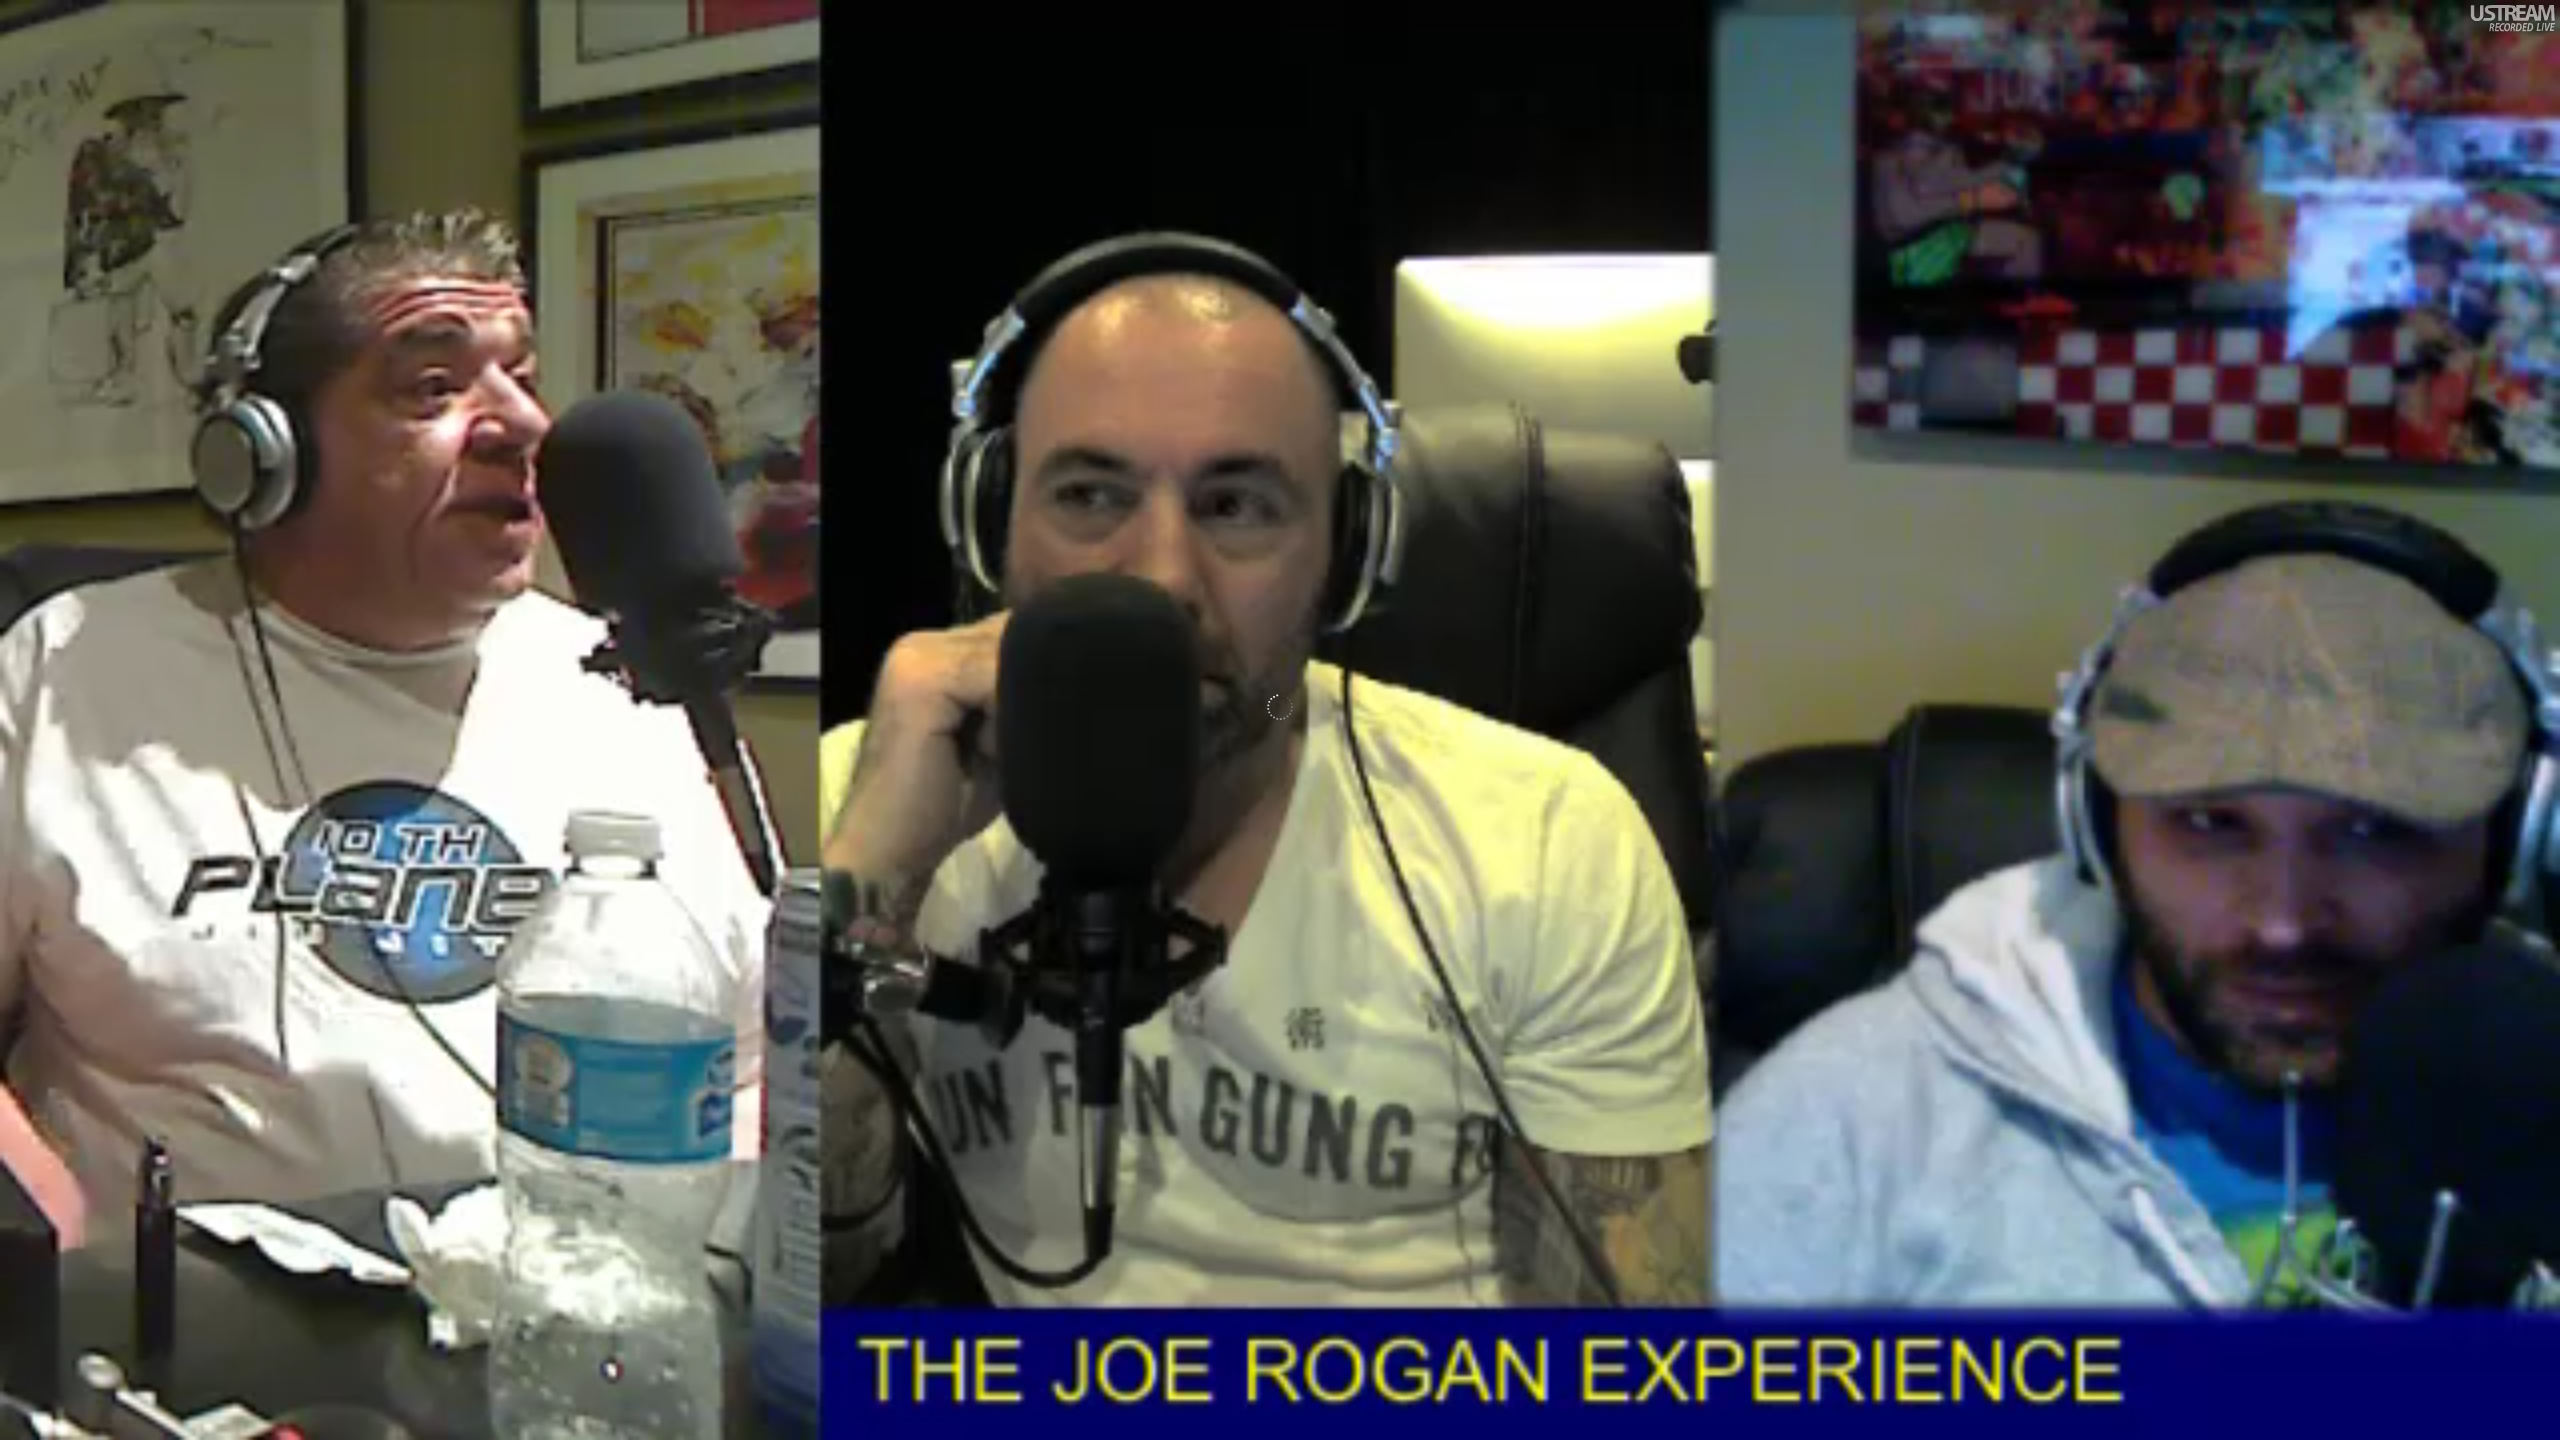 The Joe Rogan Experience #210 - Joey Diaz, Brian Redban